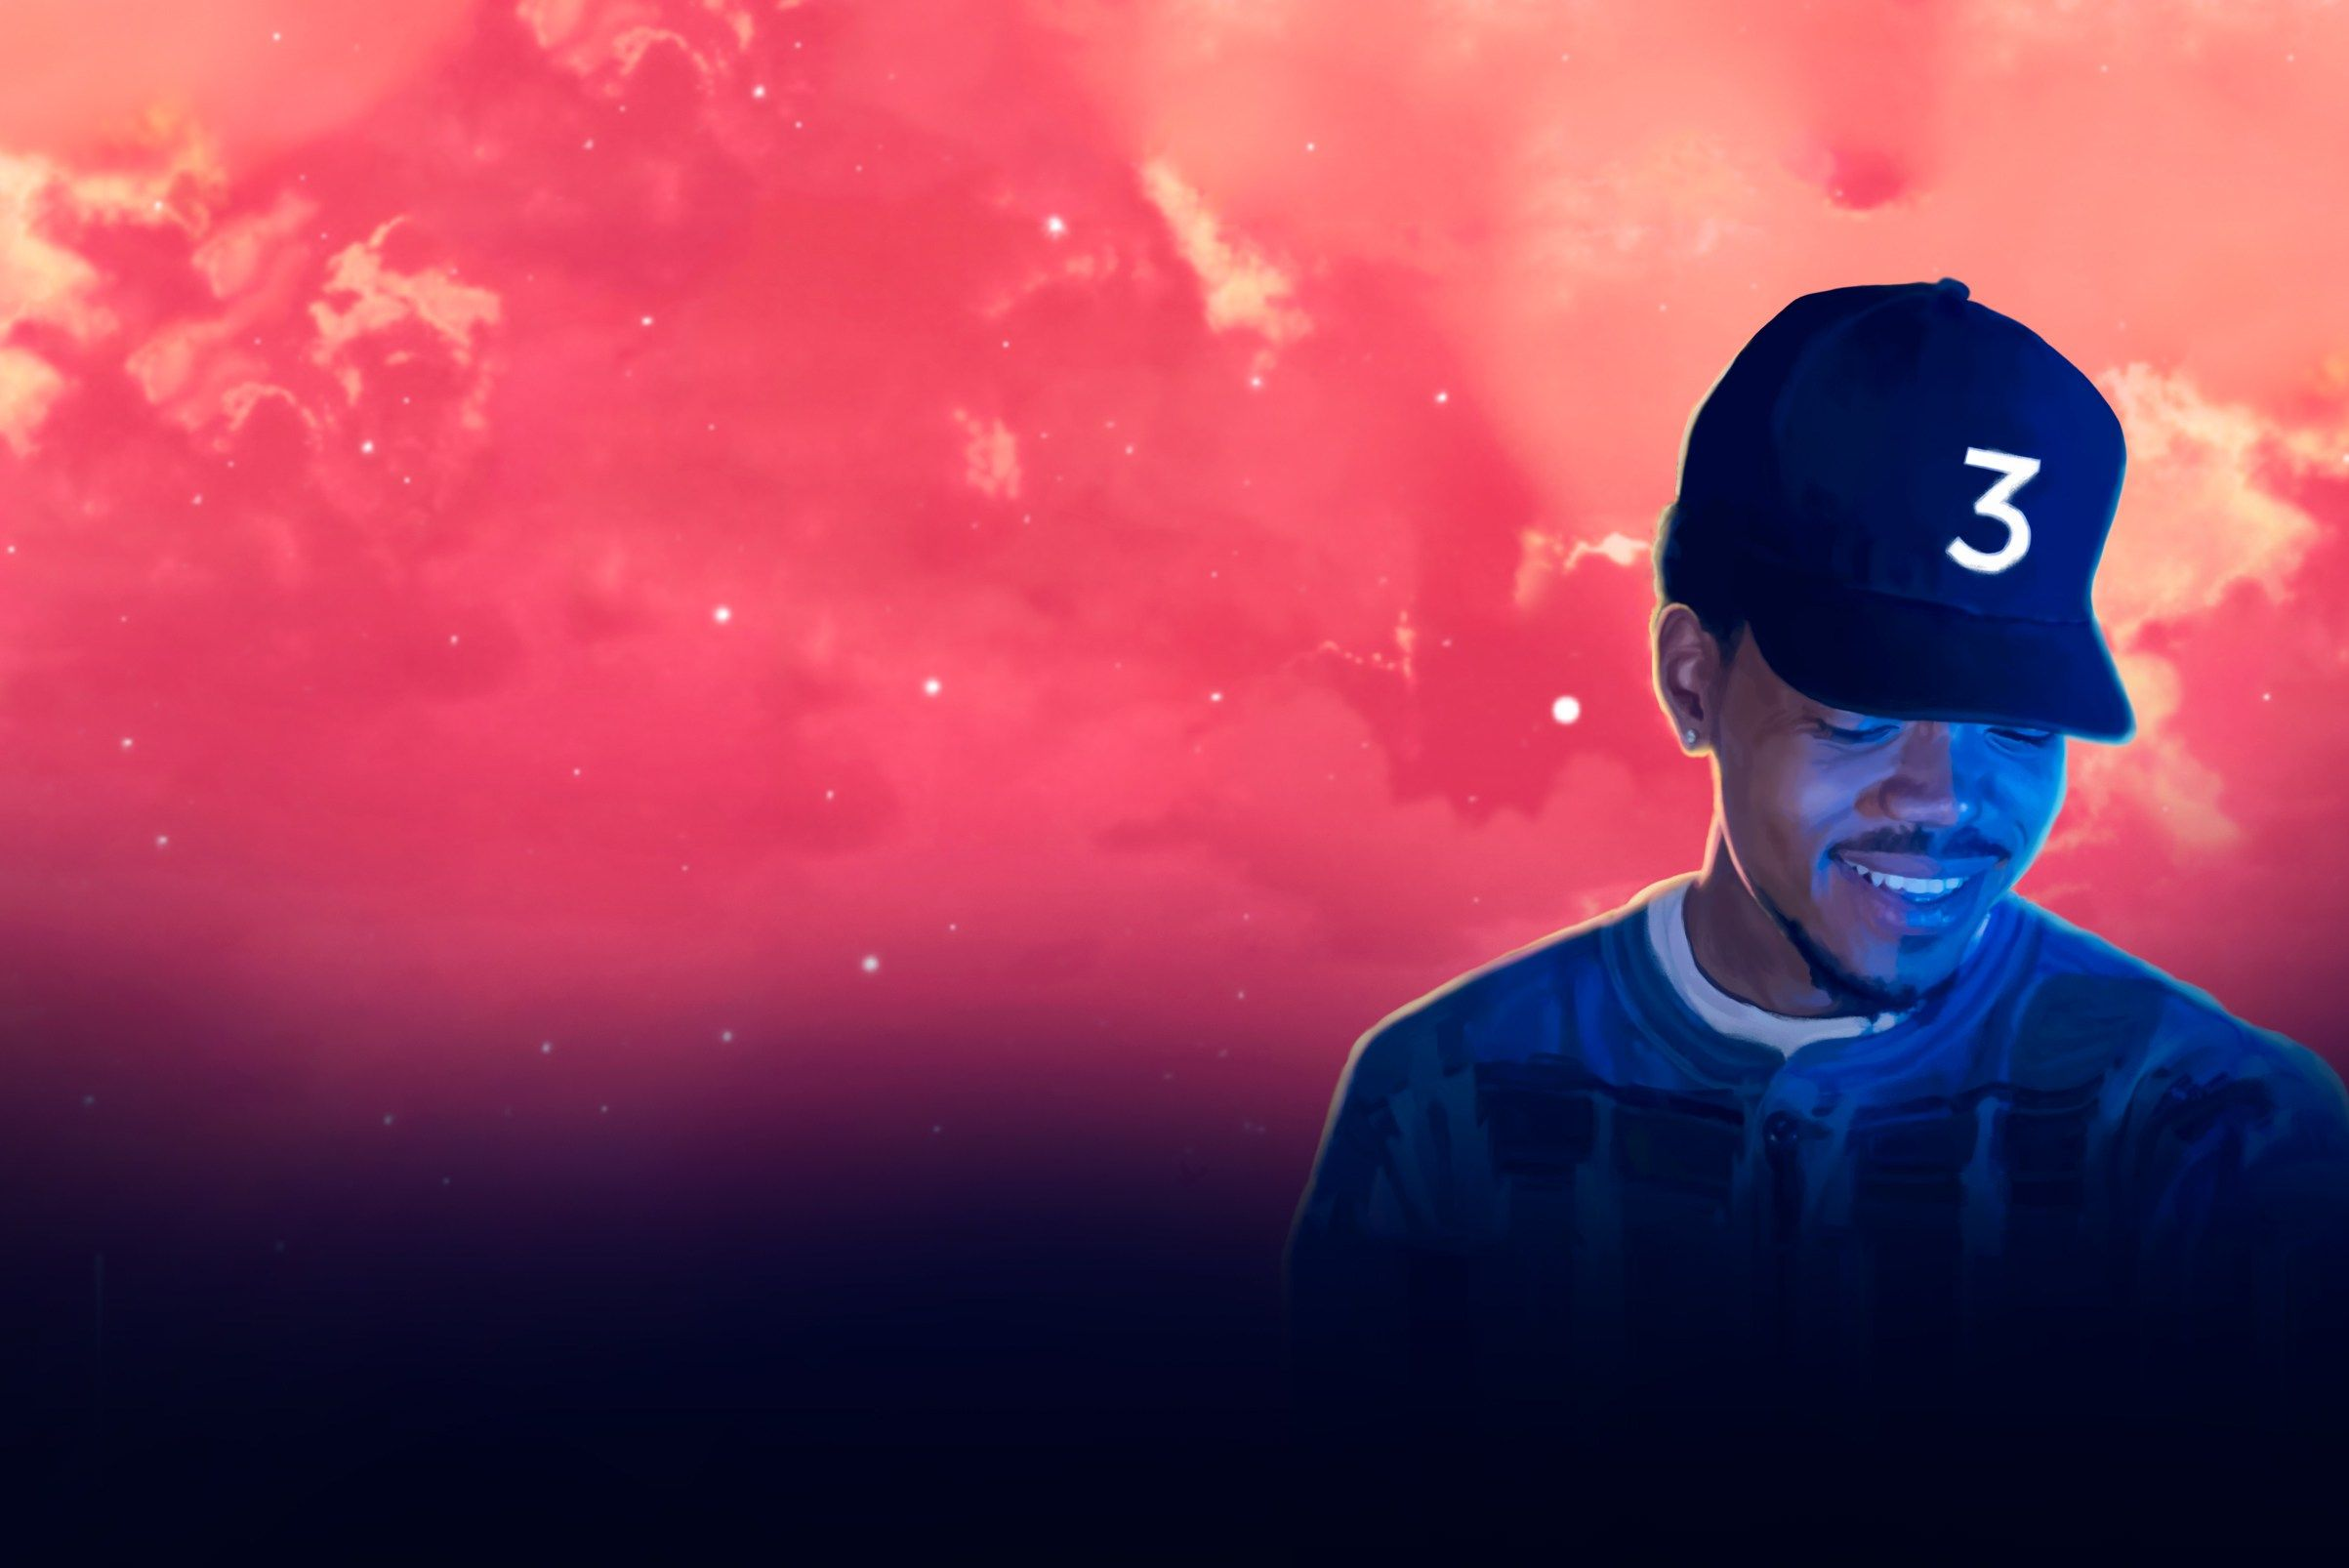 Chance The Rapper Coloring Book Review Chance The Rapper Coloring Book Chance Gospel Hip Hop